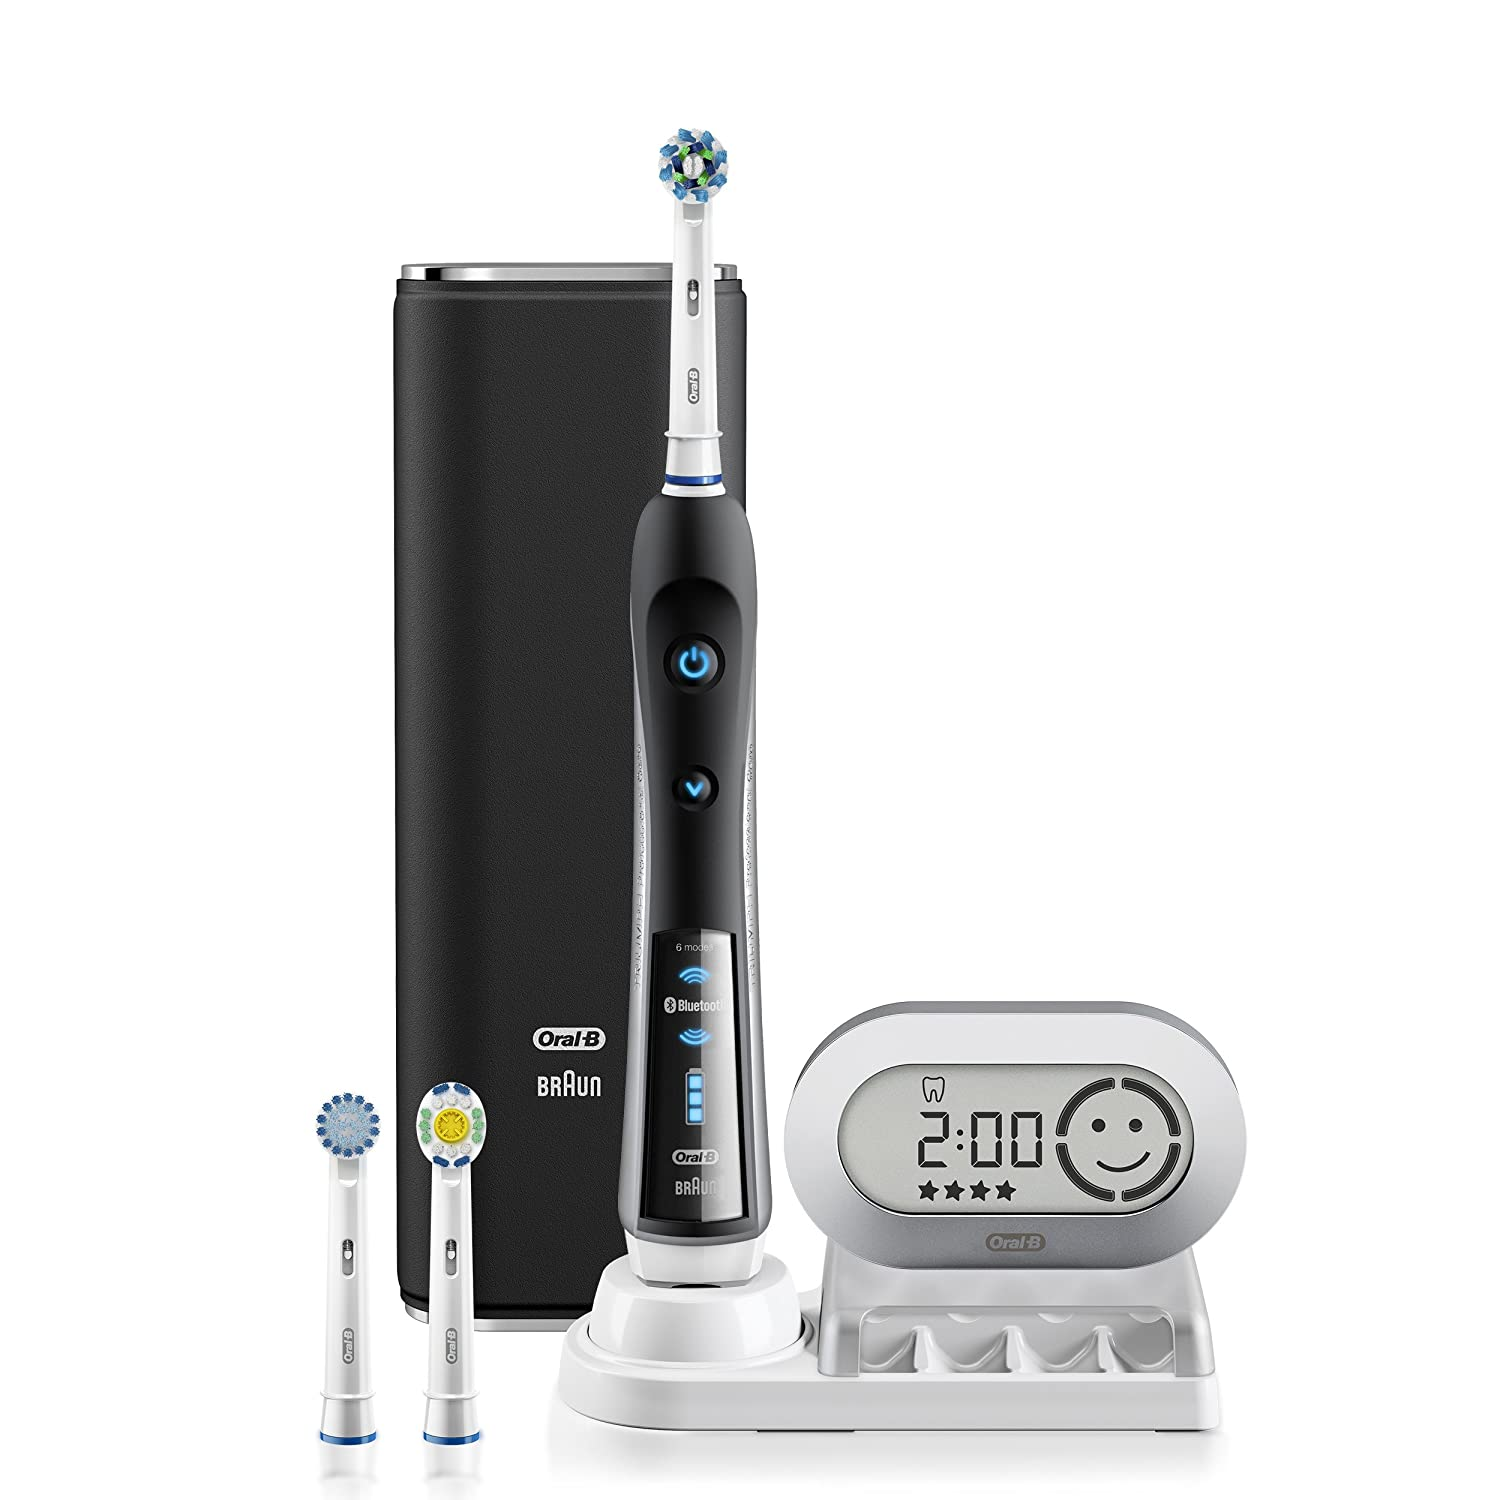 Electric Toothbrush, Oral-B Pro 7000 SmartSeries Black Electronic Power Rechargeable Toothbrush